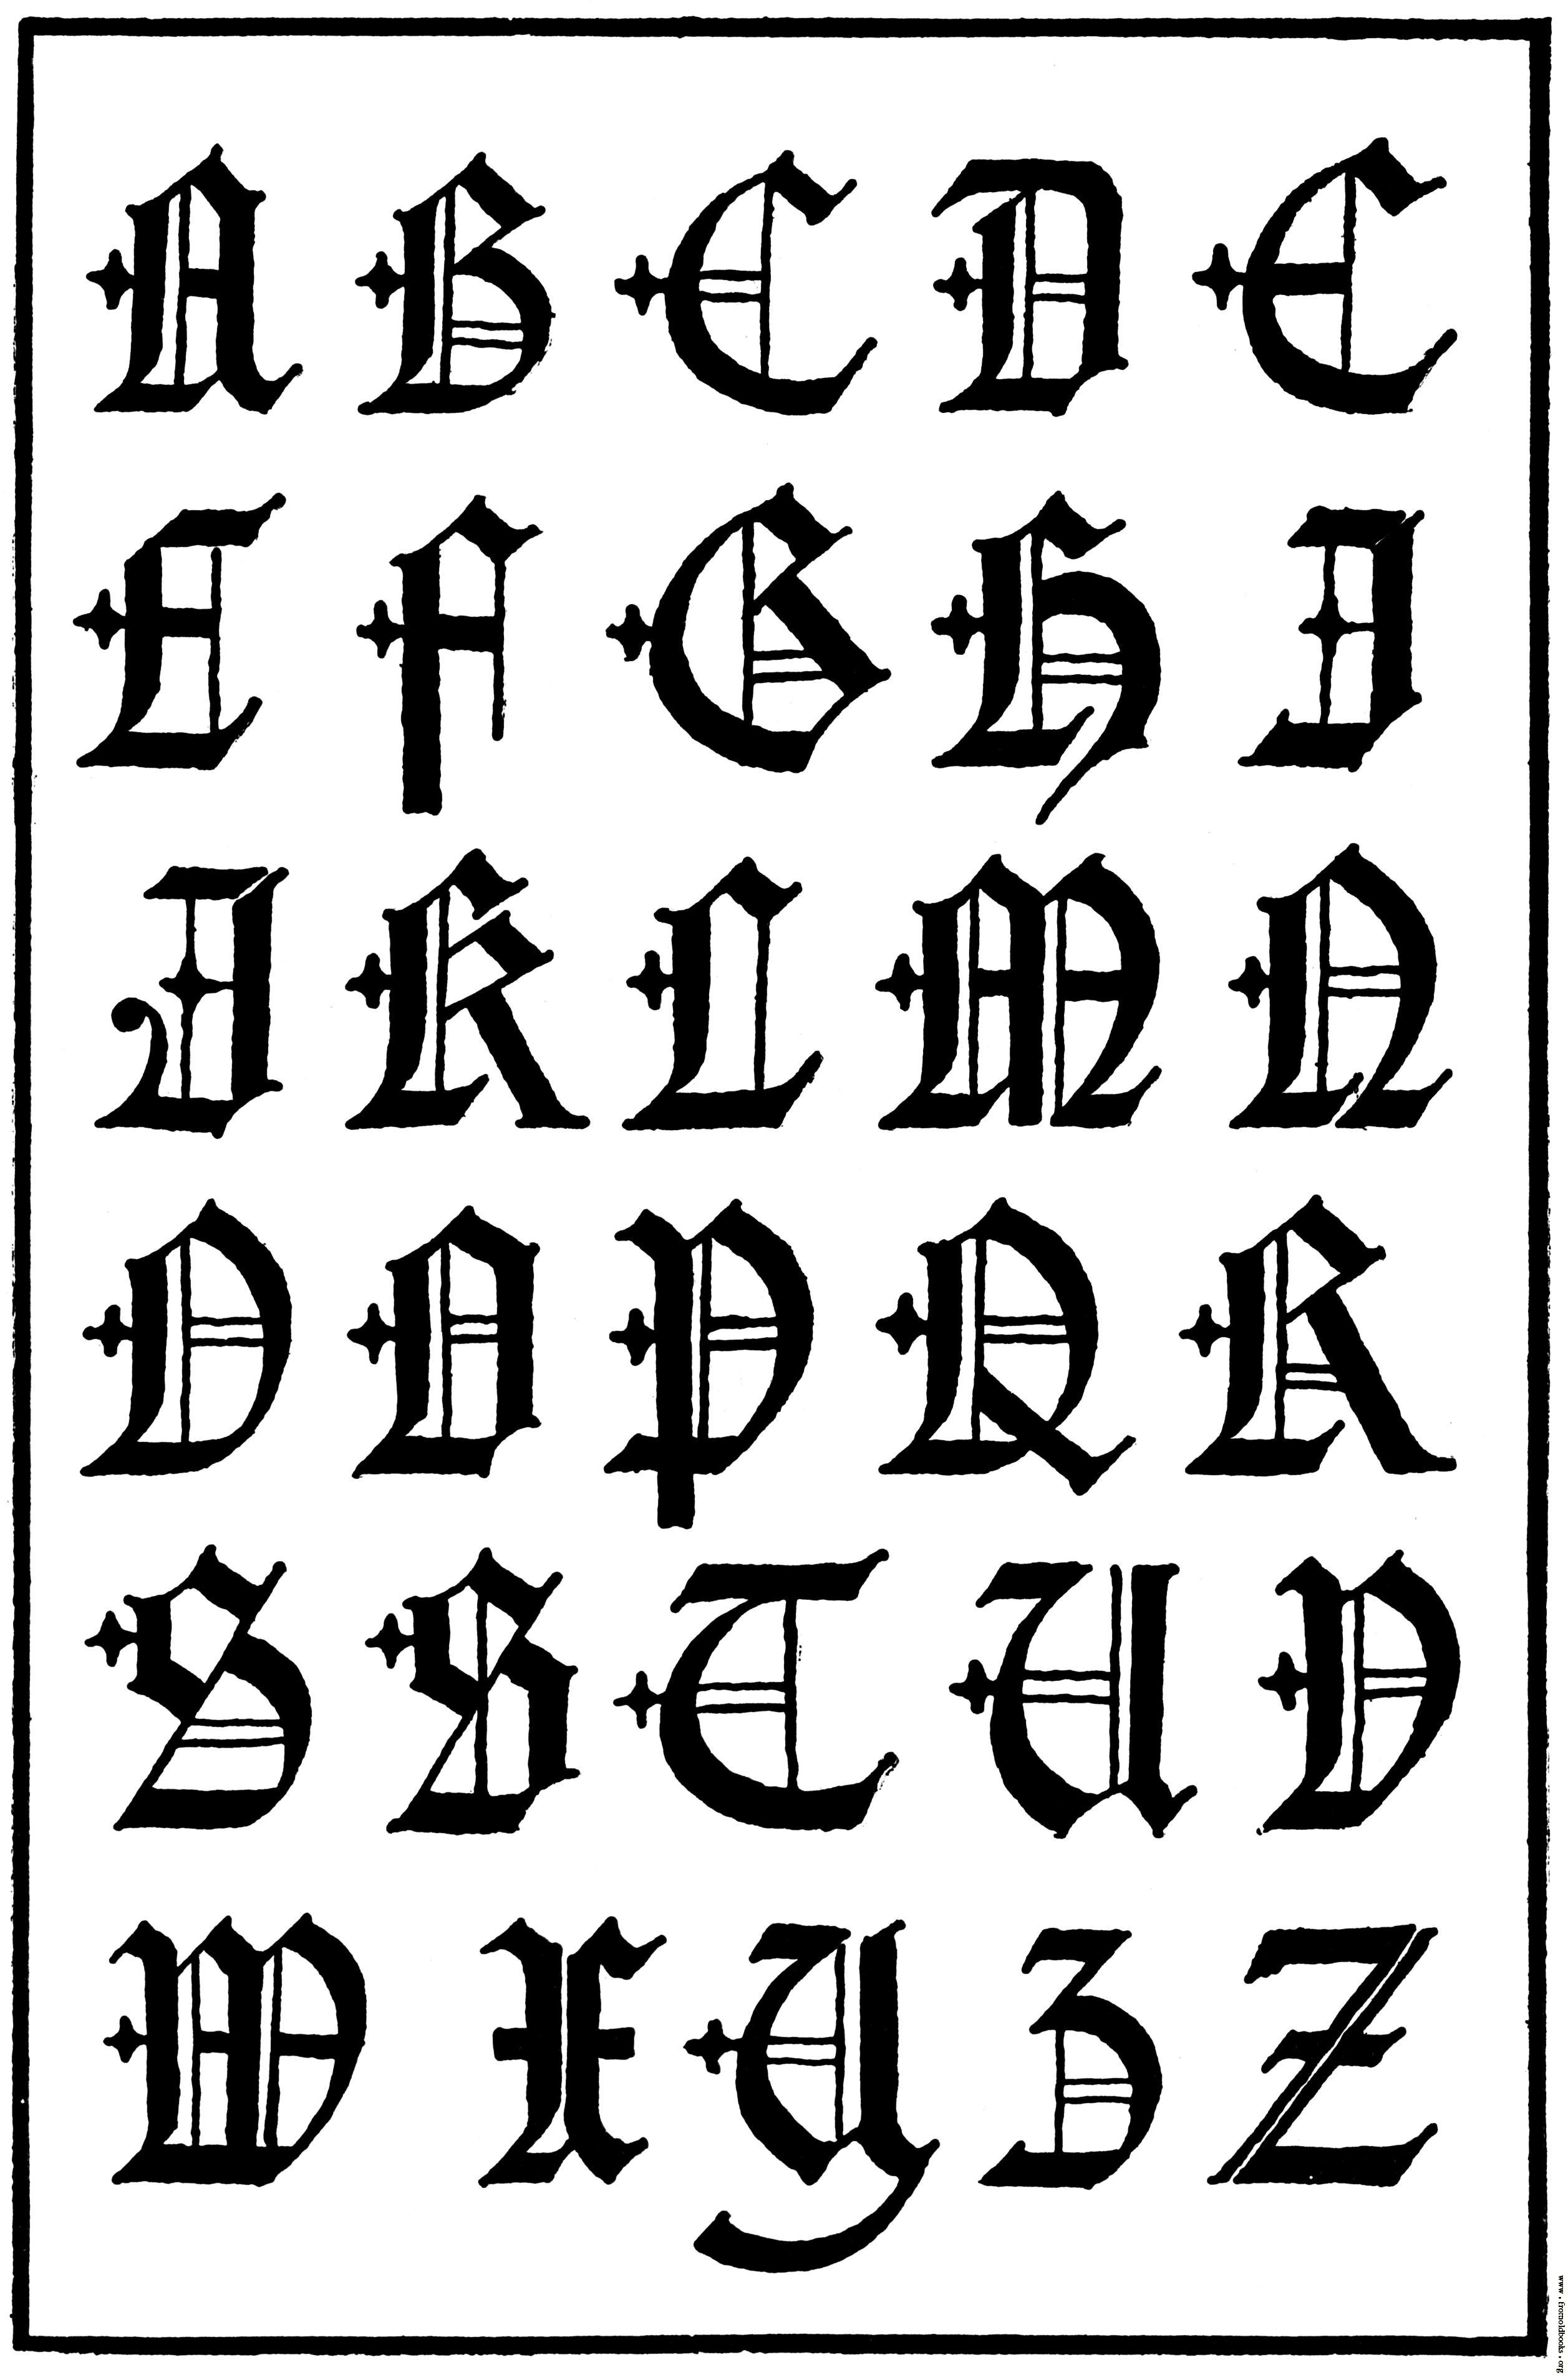 13 16 Century Gothic Letter Fonts Images